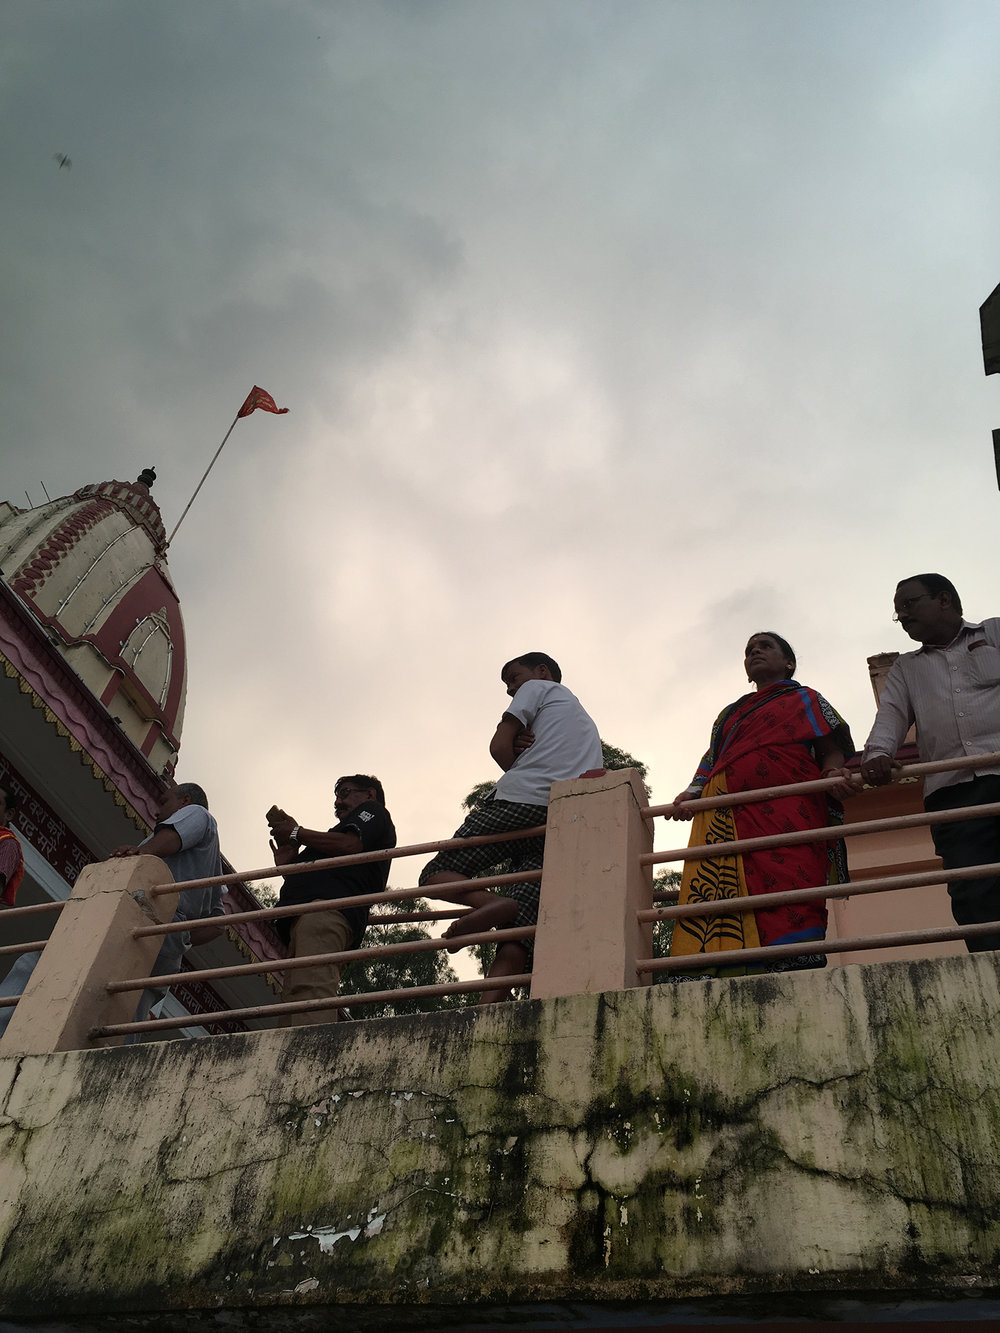 Spectators on the bank of the Ganga